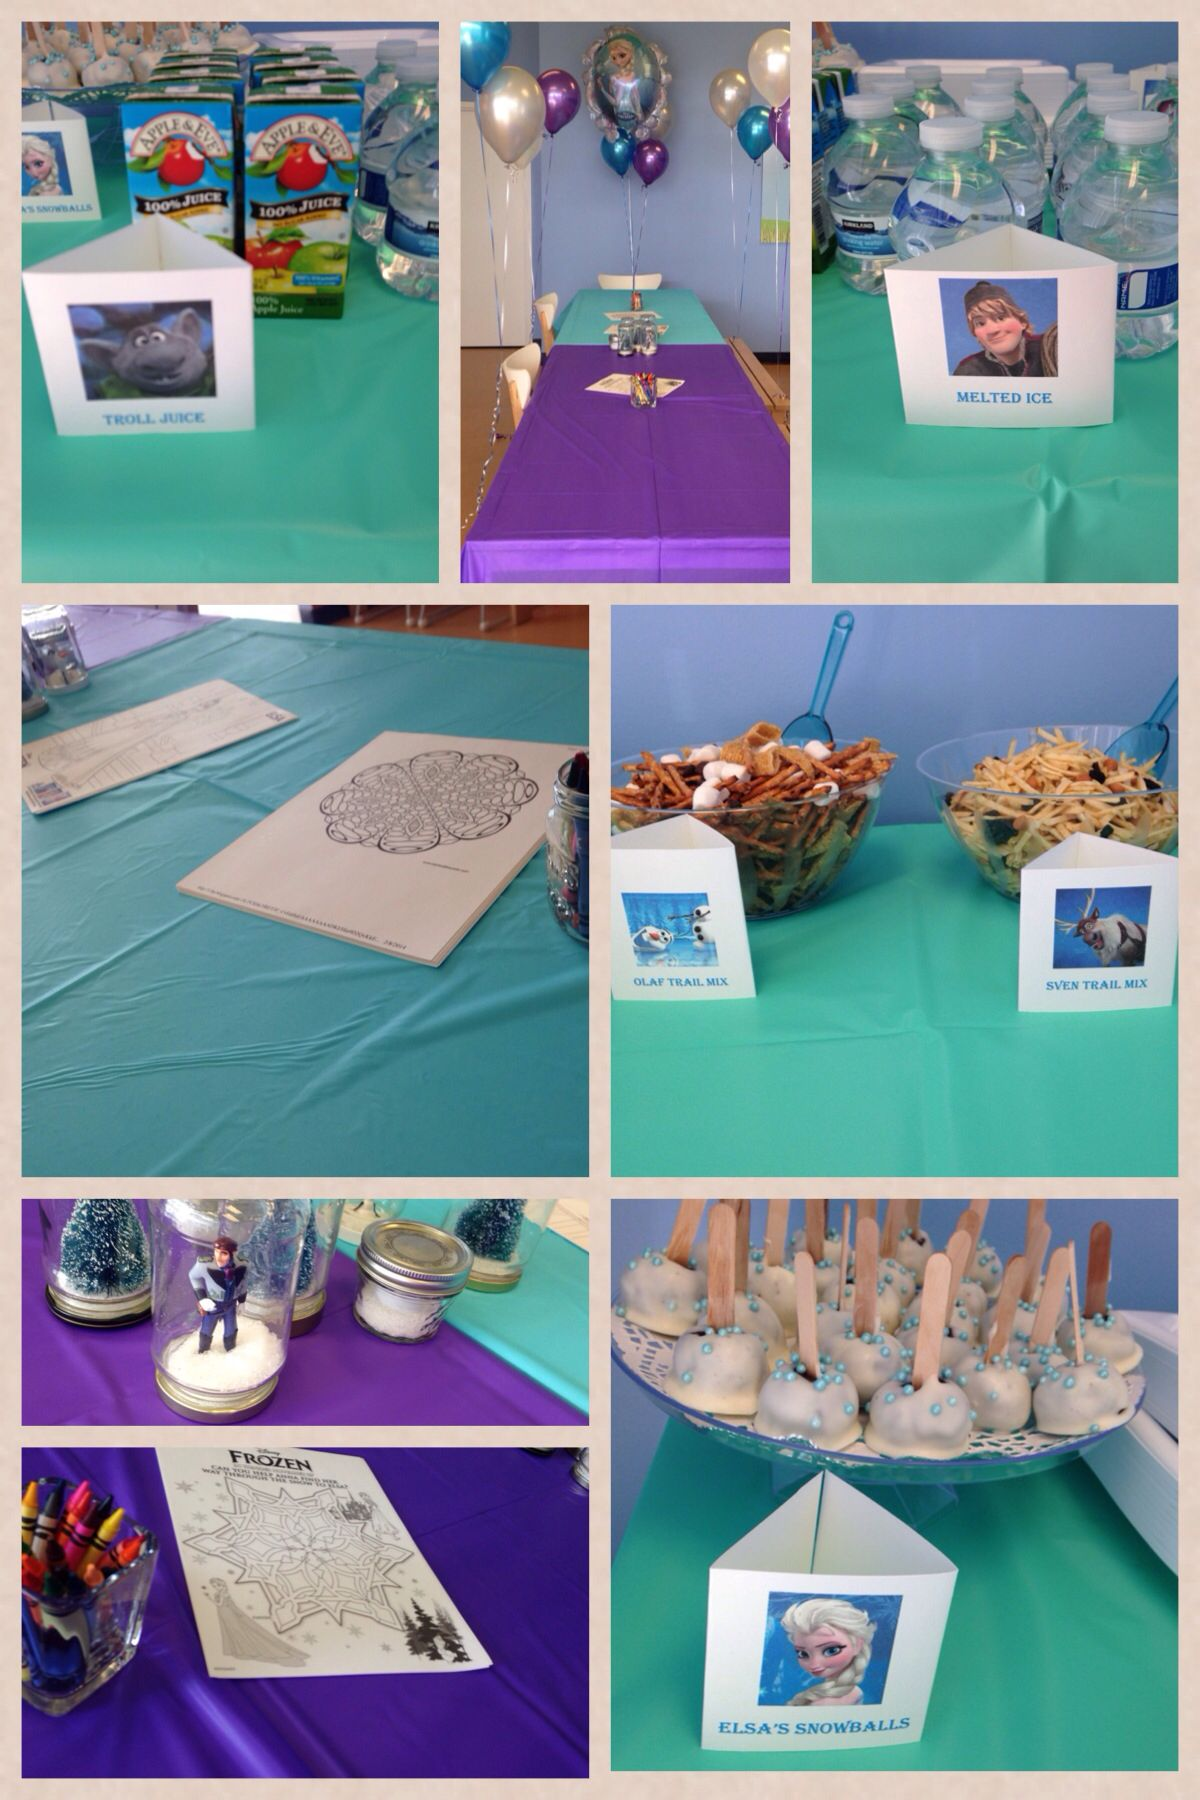 Frozen birthday party coloring pages - Frozen Birthday Party Free Coloring Pages And Printables Online Frozen Themed Snacks Treats